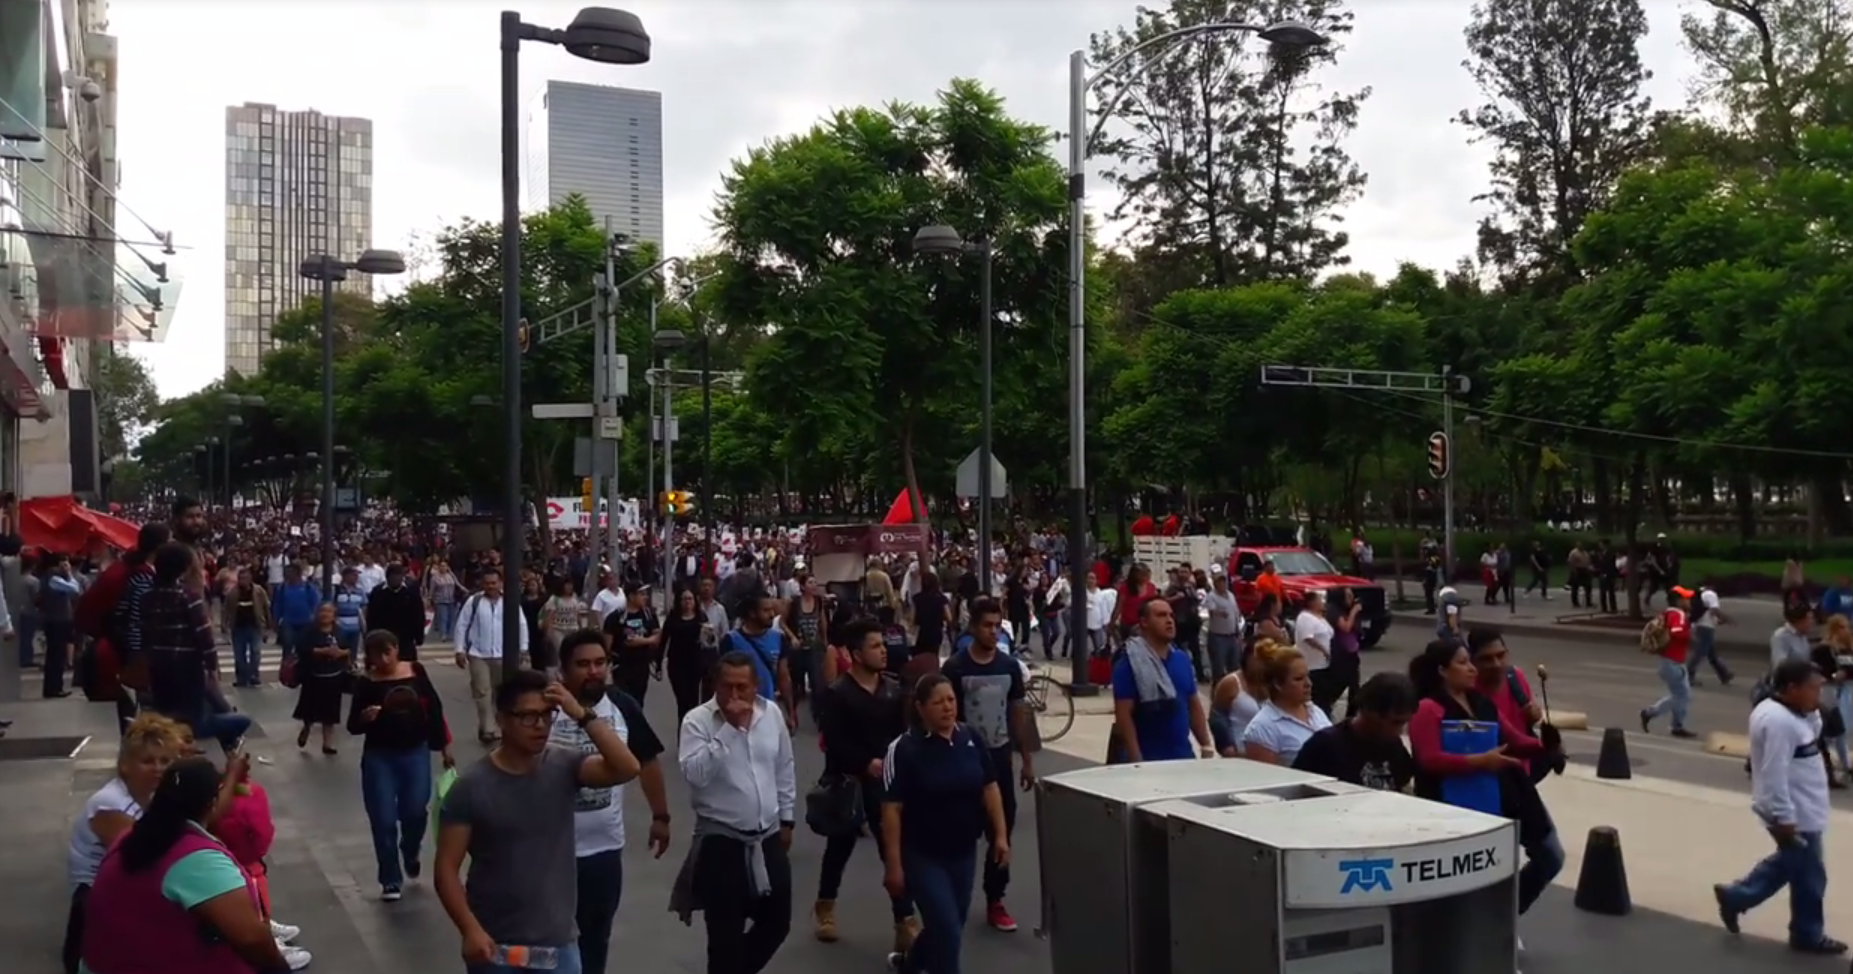 Anti-NAFTA Protesters March in Mexico City as Trade Agreement Talks Begin in Washington